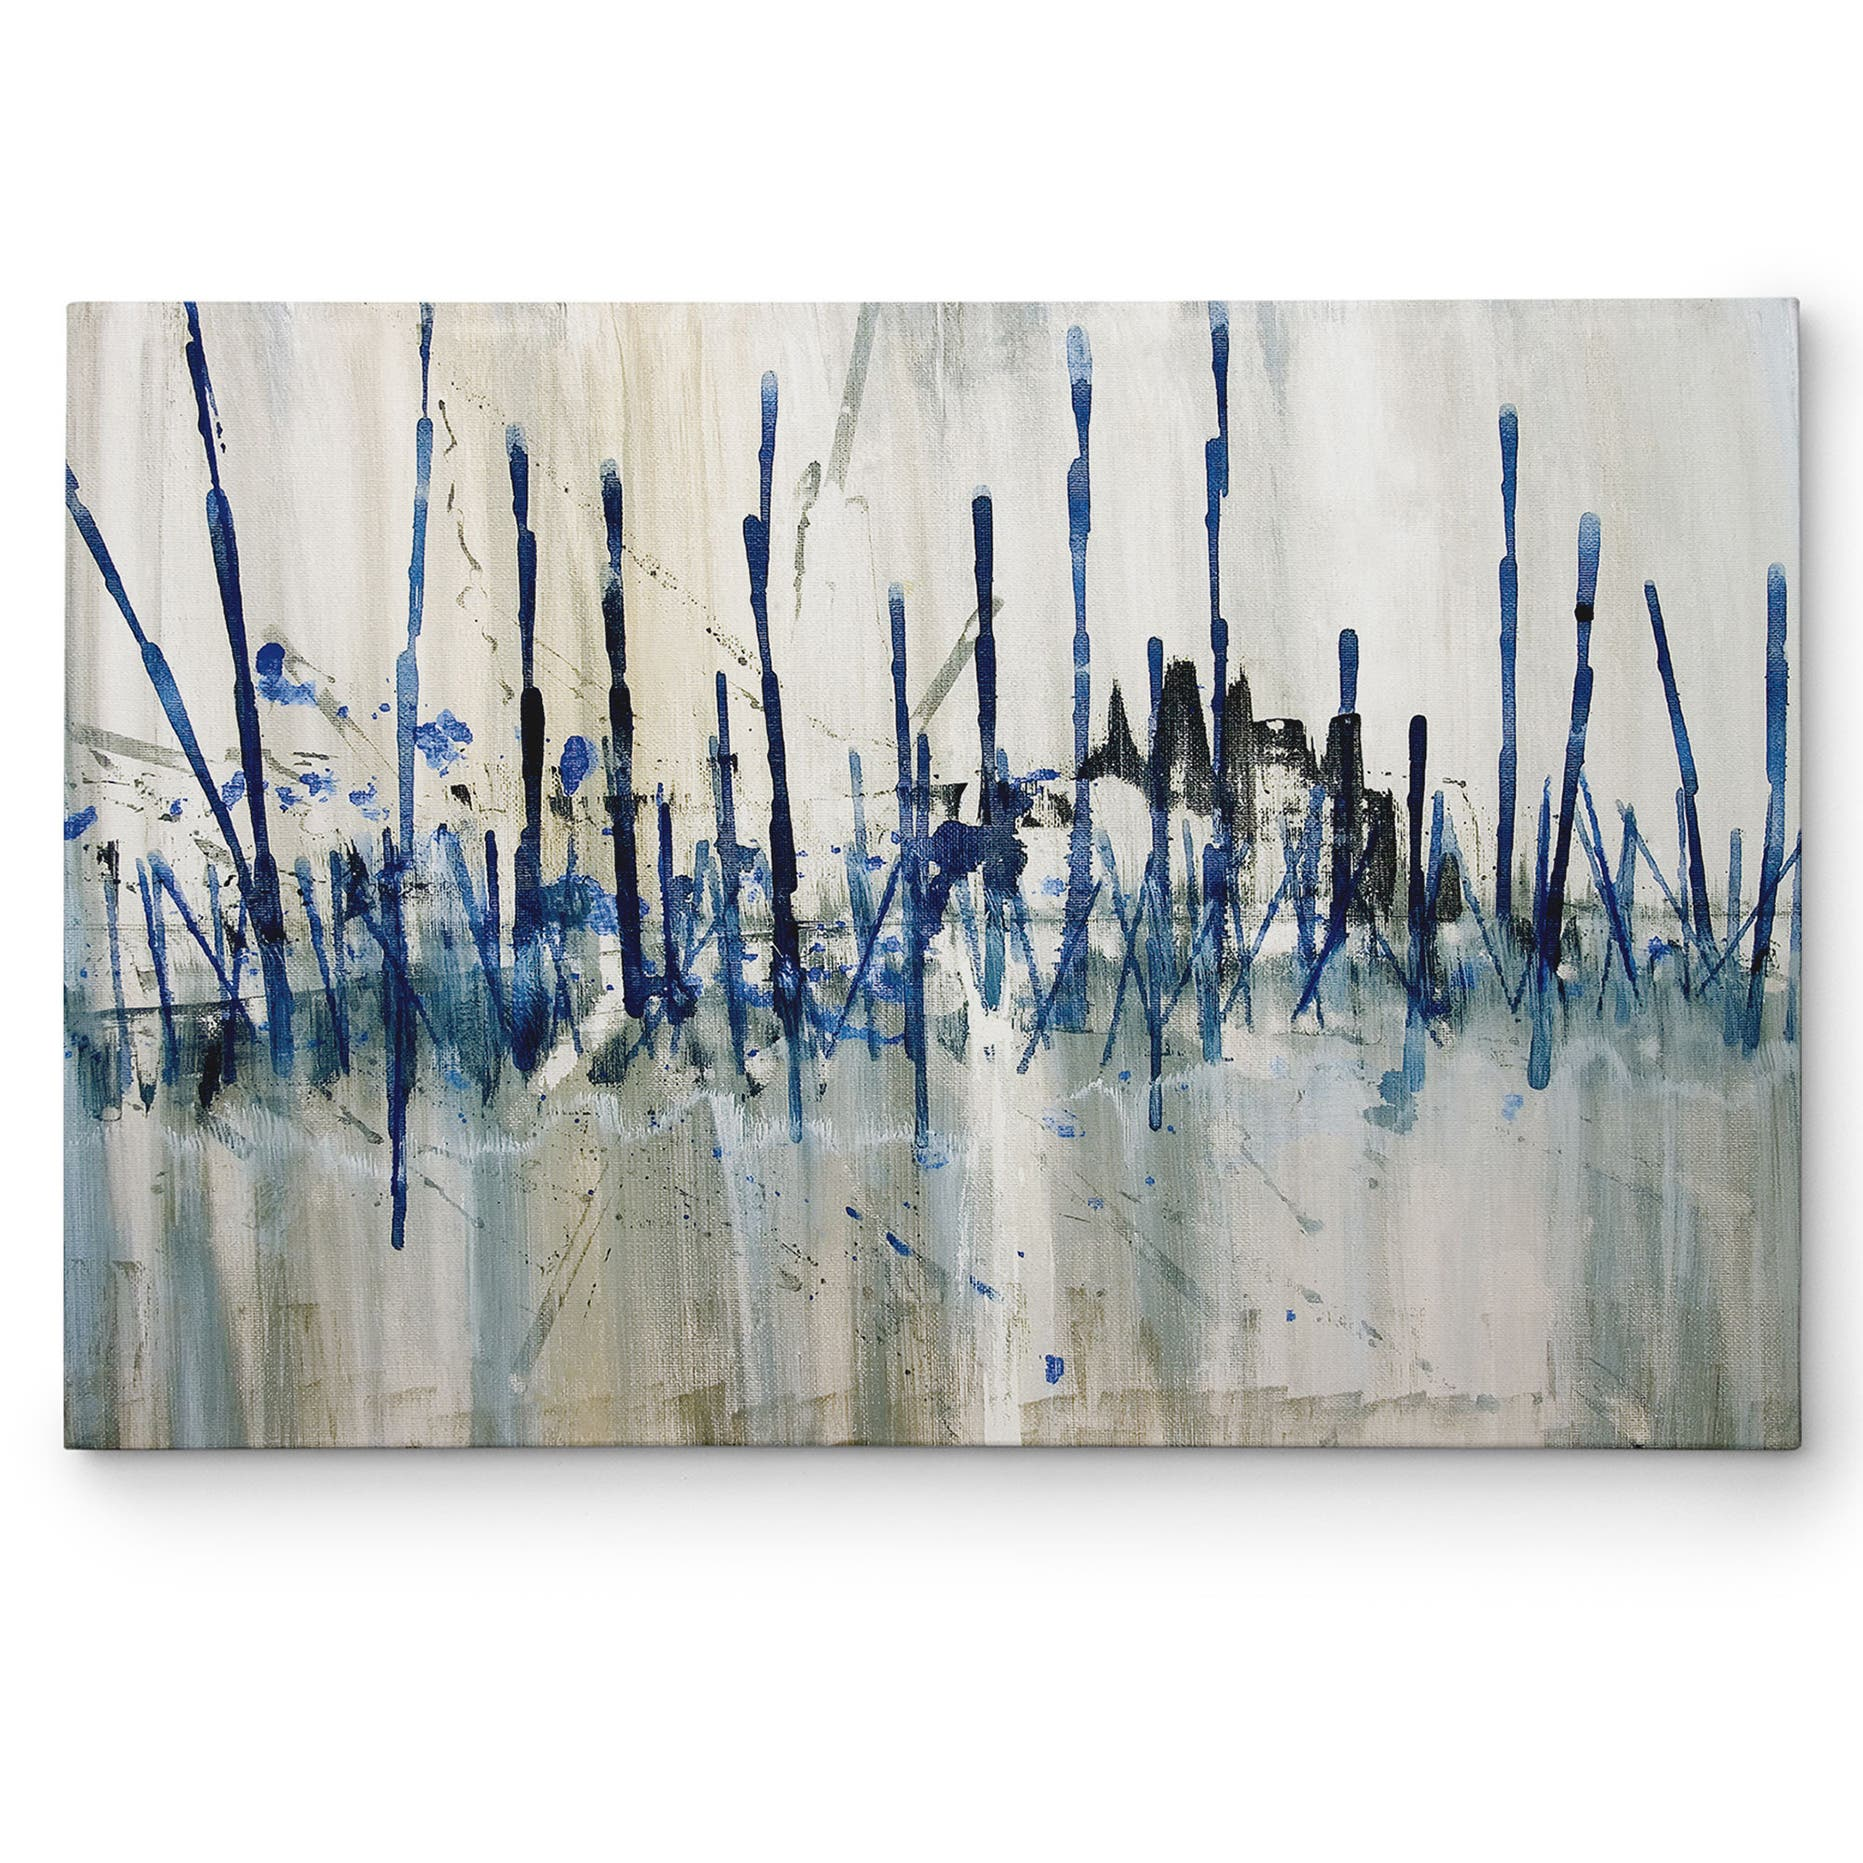 Gallery Wrapped Canvas For Less | Overstock.com